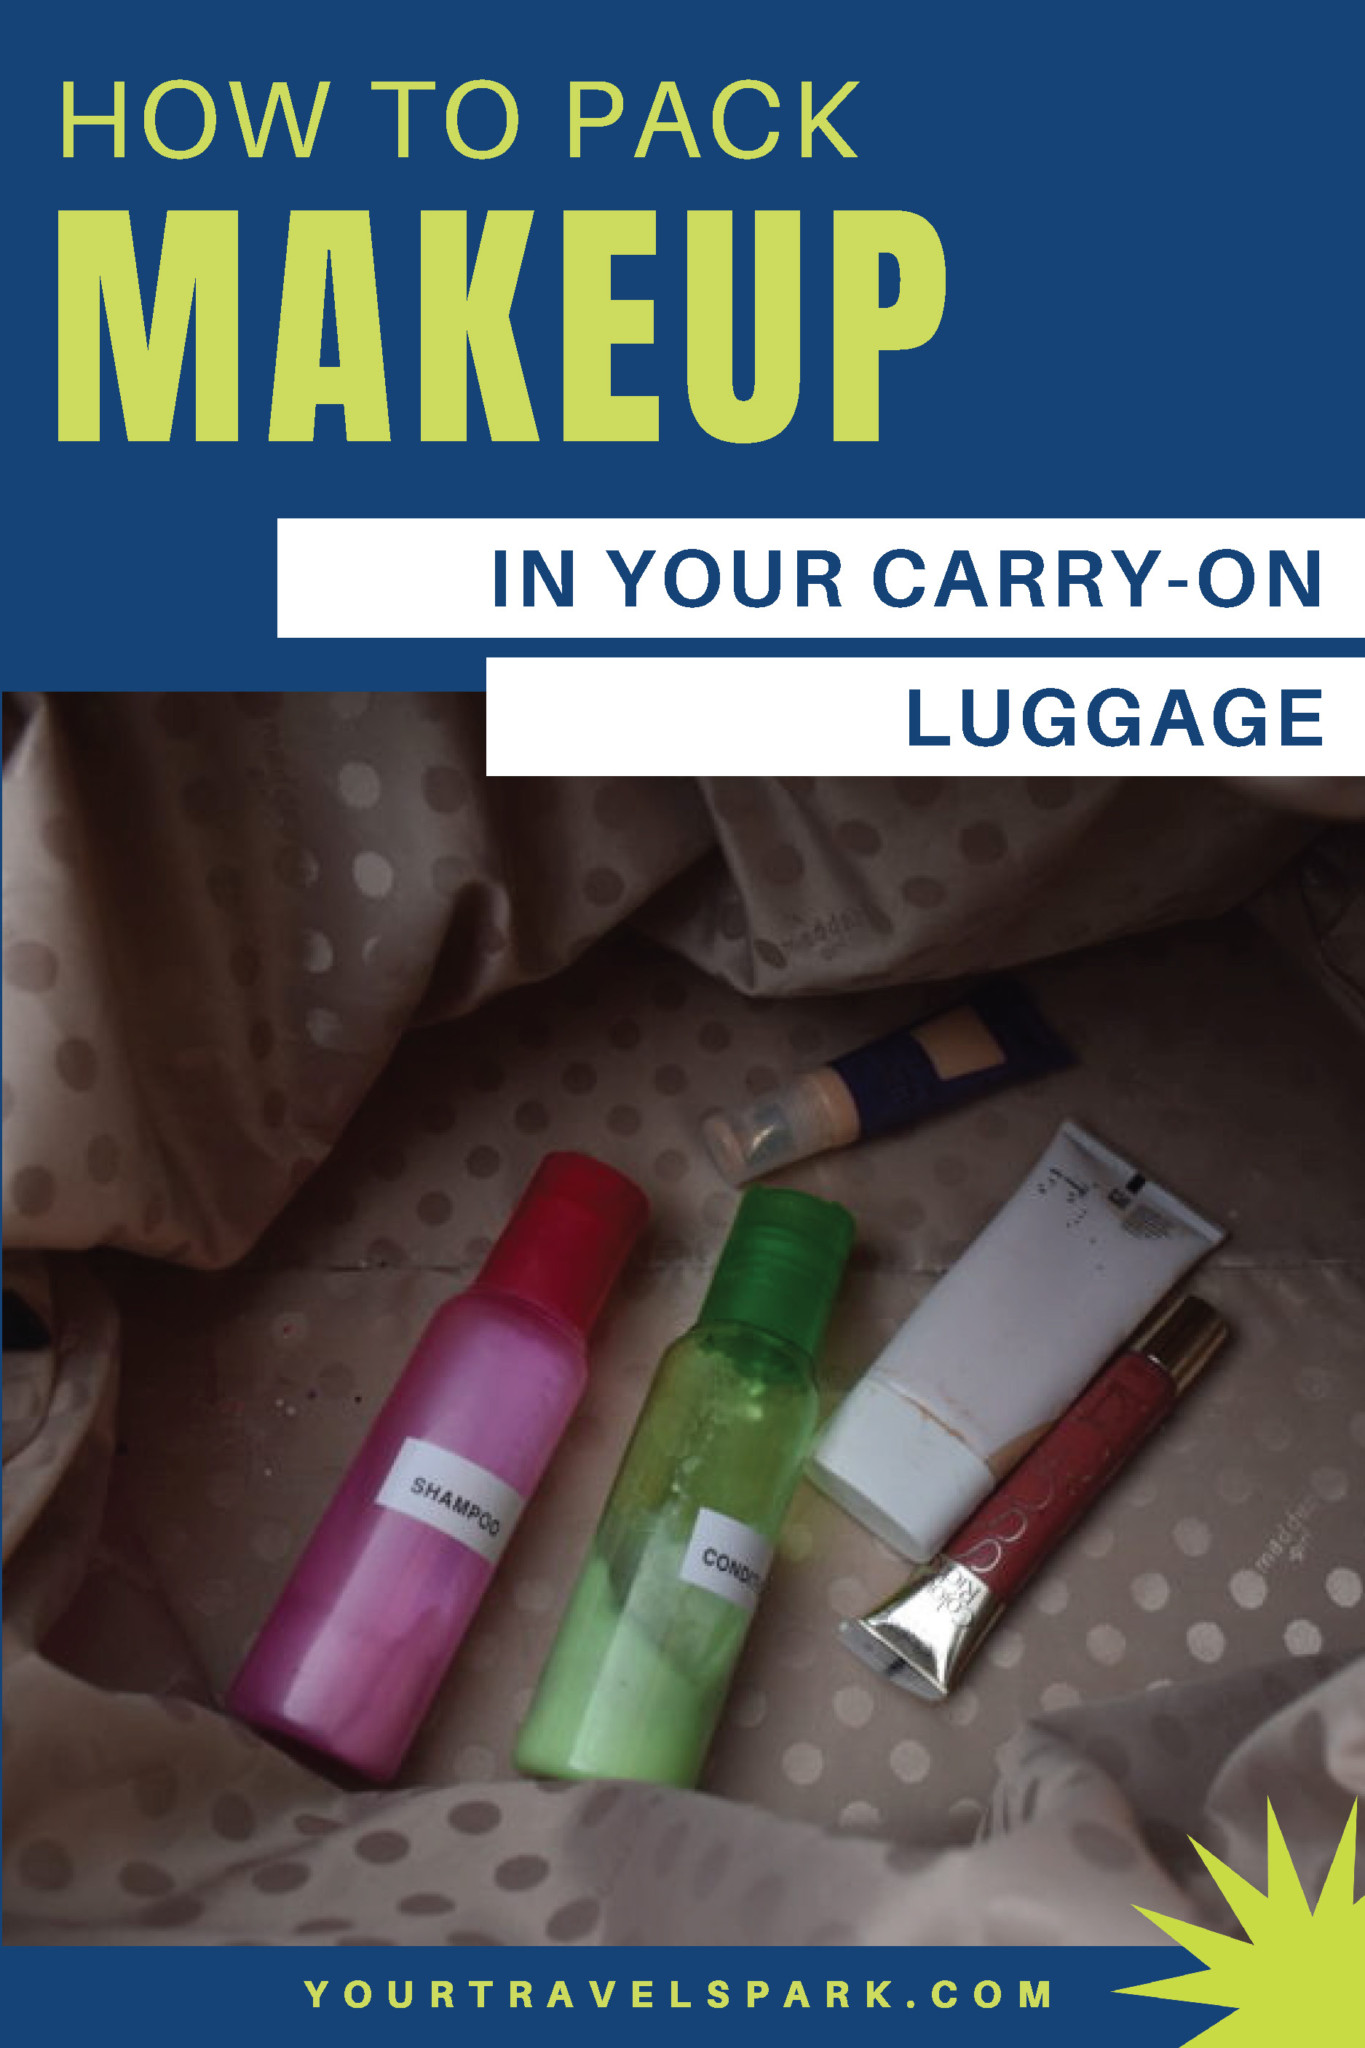 You can pack most of your makeup in your carry-on luggage, but you have to follow the TSA's rules very carefully. Here are our tips for packing your toiletries if you don't plan to check a bag. #carryon #carryonluggage #carryonbag #packingmakeup #makeup #toiletries #tsarules #packingtoiletries